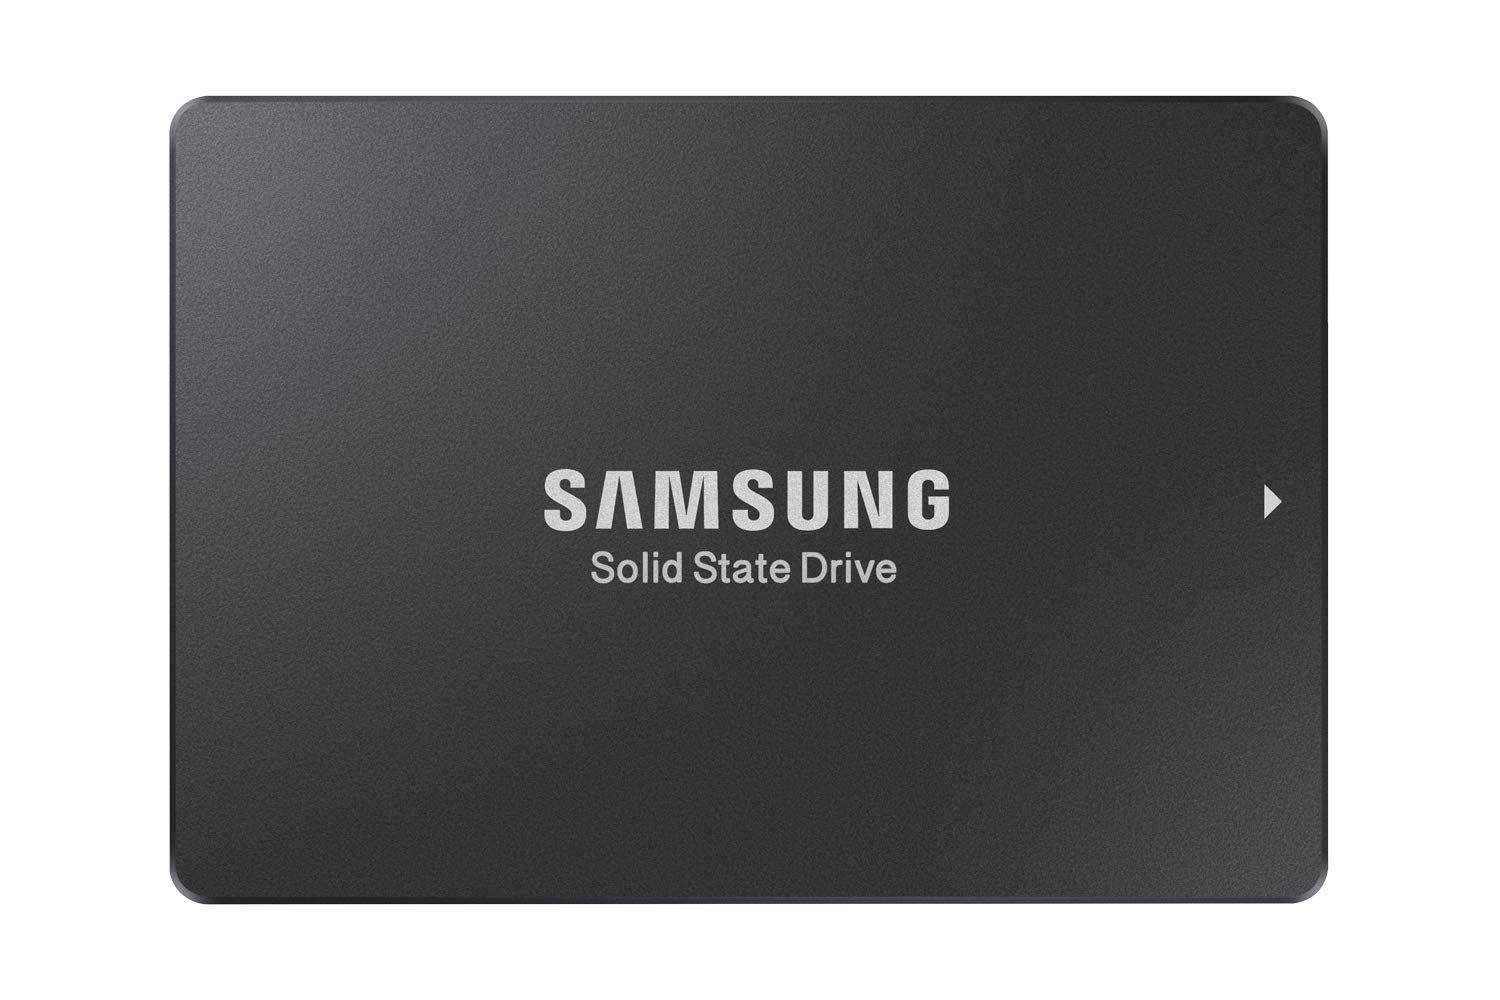 Samsung 860 DCT Series -1.92TB SATA 2.5'' 7mm SSD - MZ-76E1T9E - 5 year limited warranty, Black